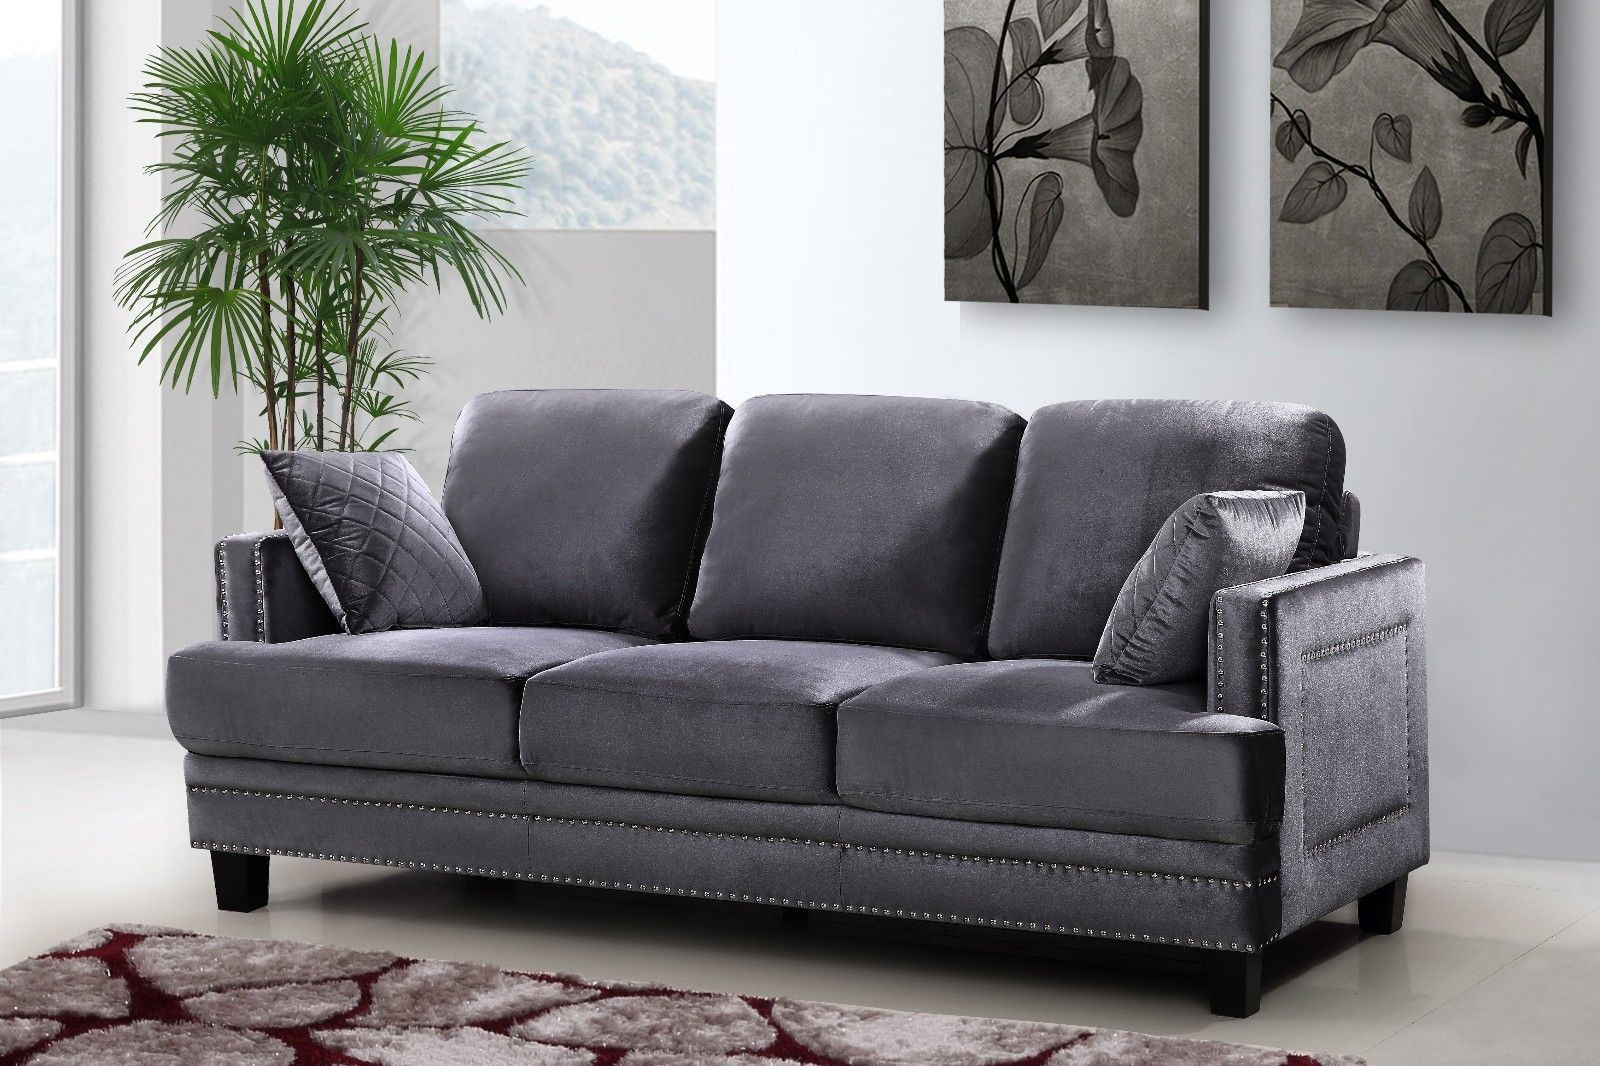 Meridian 655 Grey Velvet Leather Living Room Sofa Set 3pc. Contemporary Style